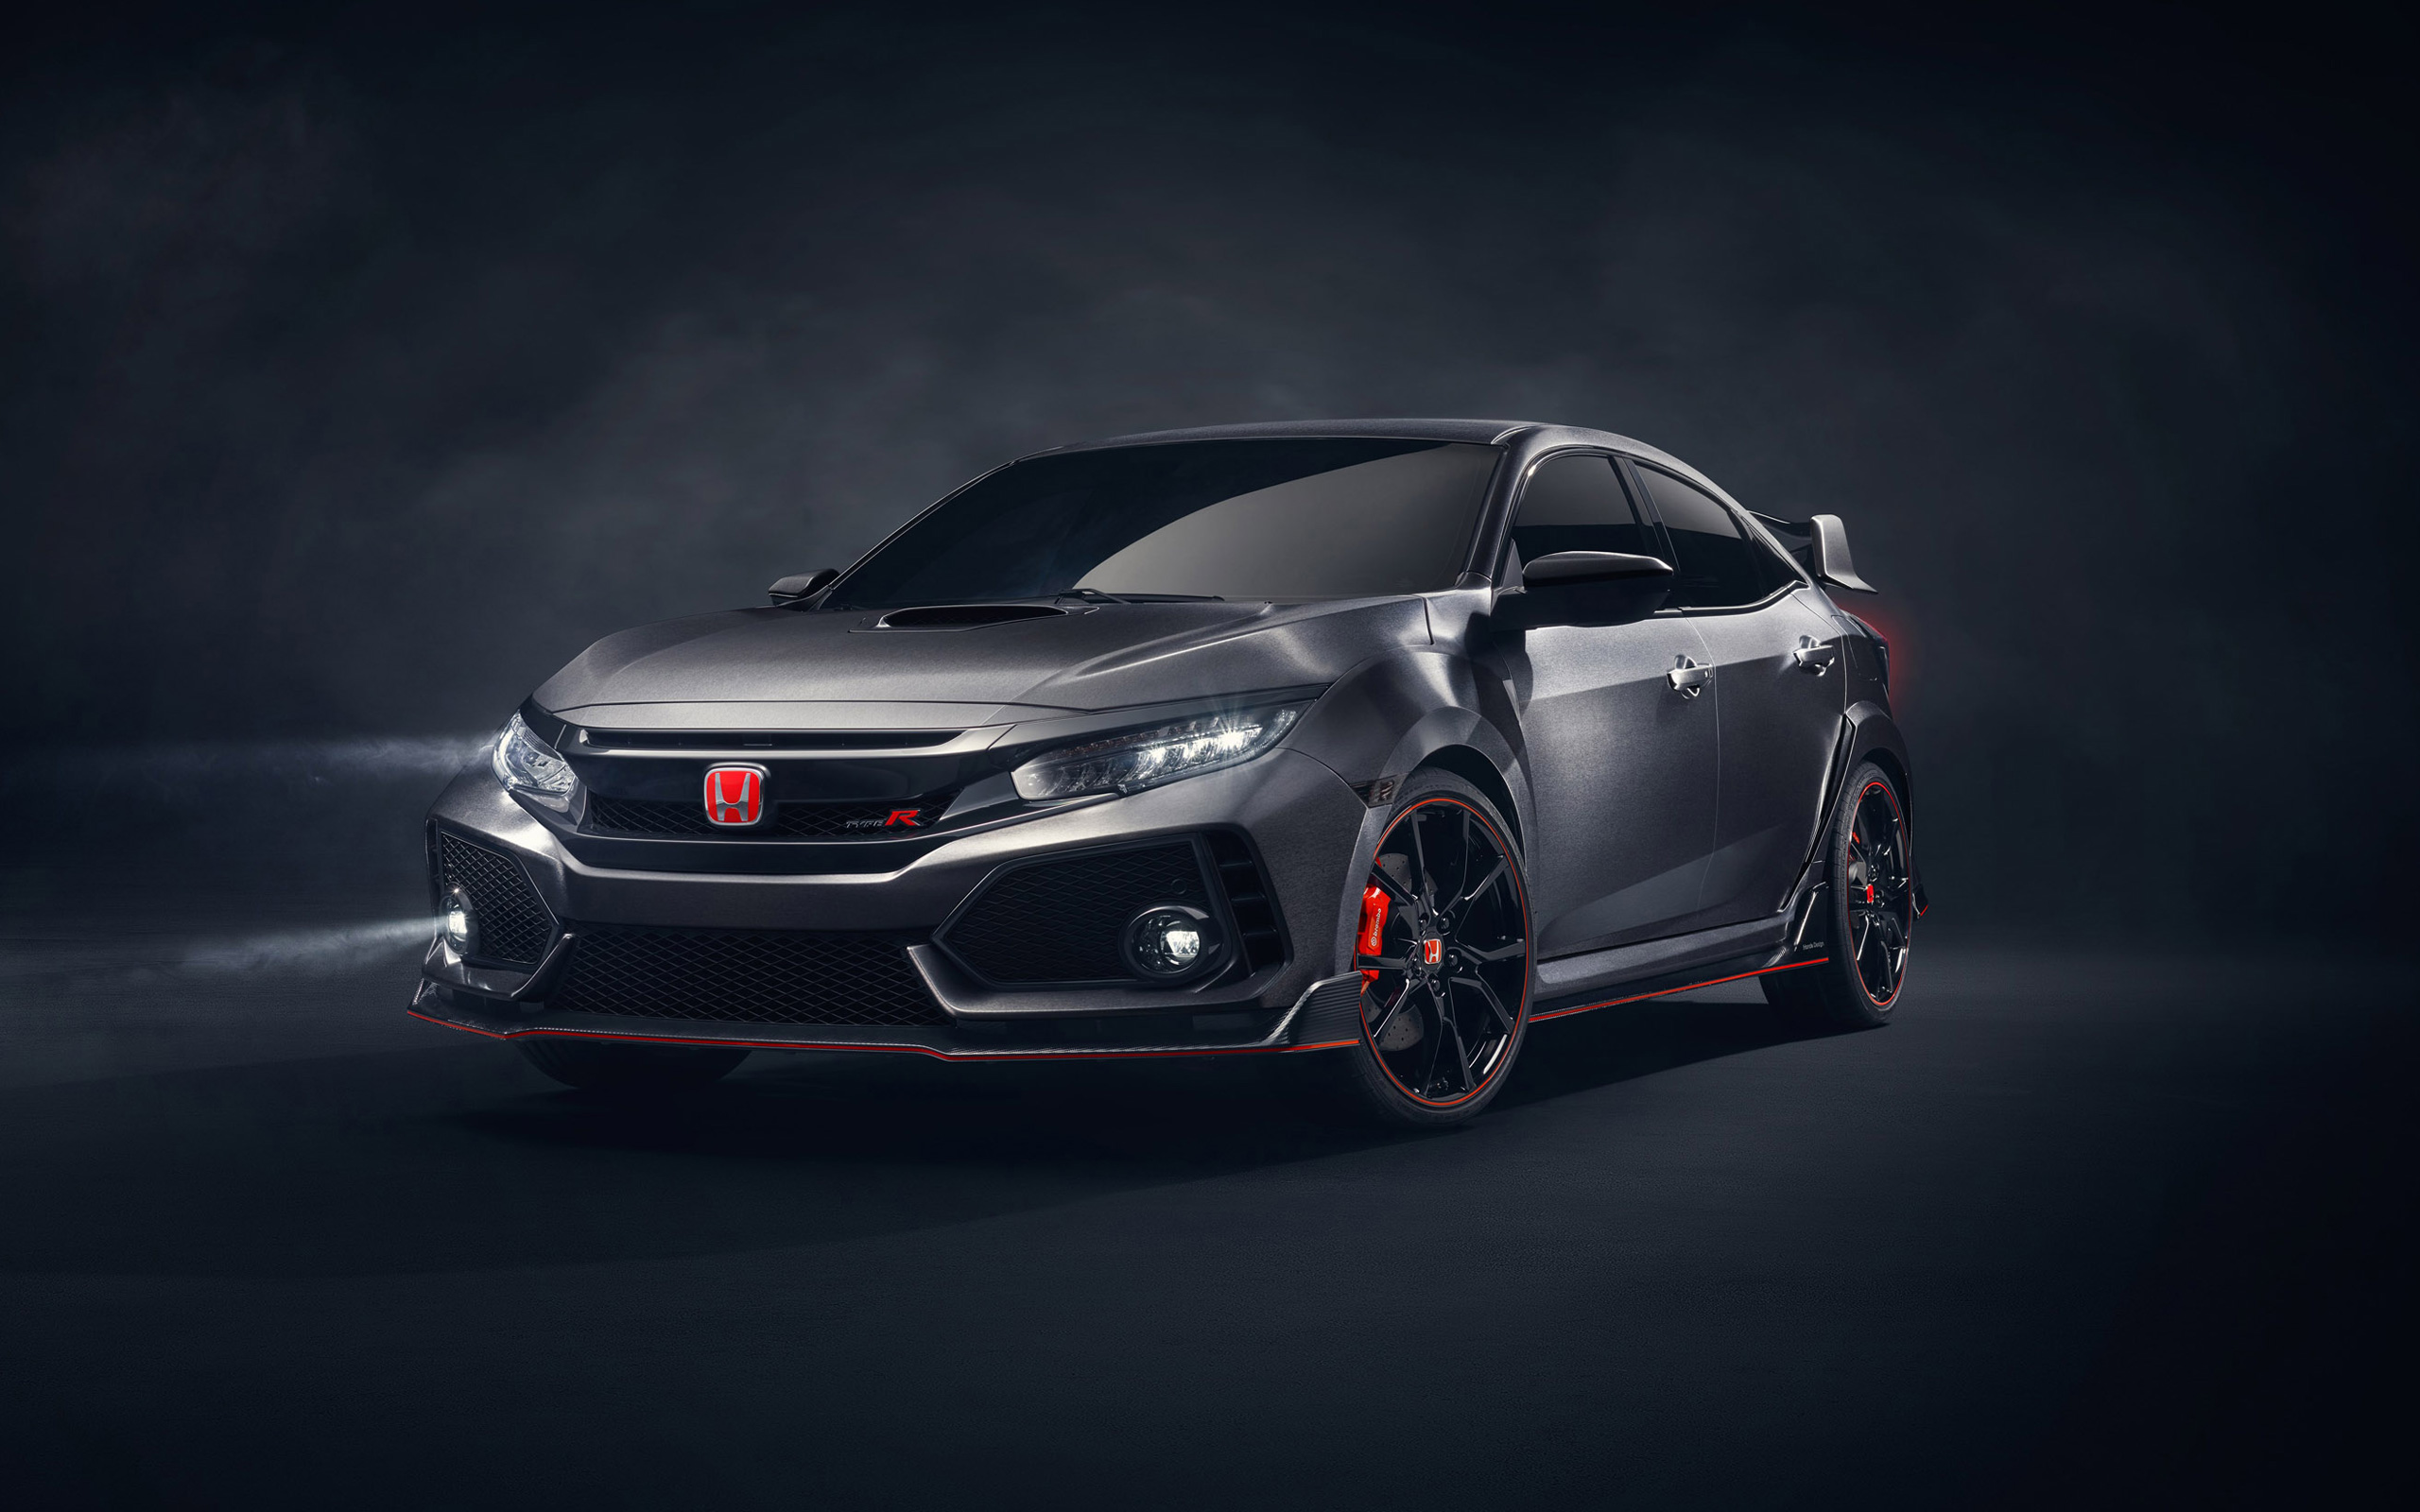 2017 honda civic type r 2 wallpaper hd car wallpapers id 7023. Black Bedroom Furniture Sets. Home Design Ideas